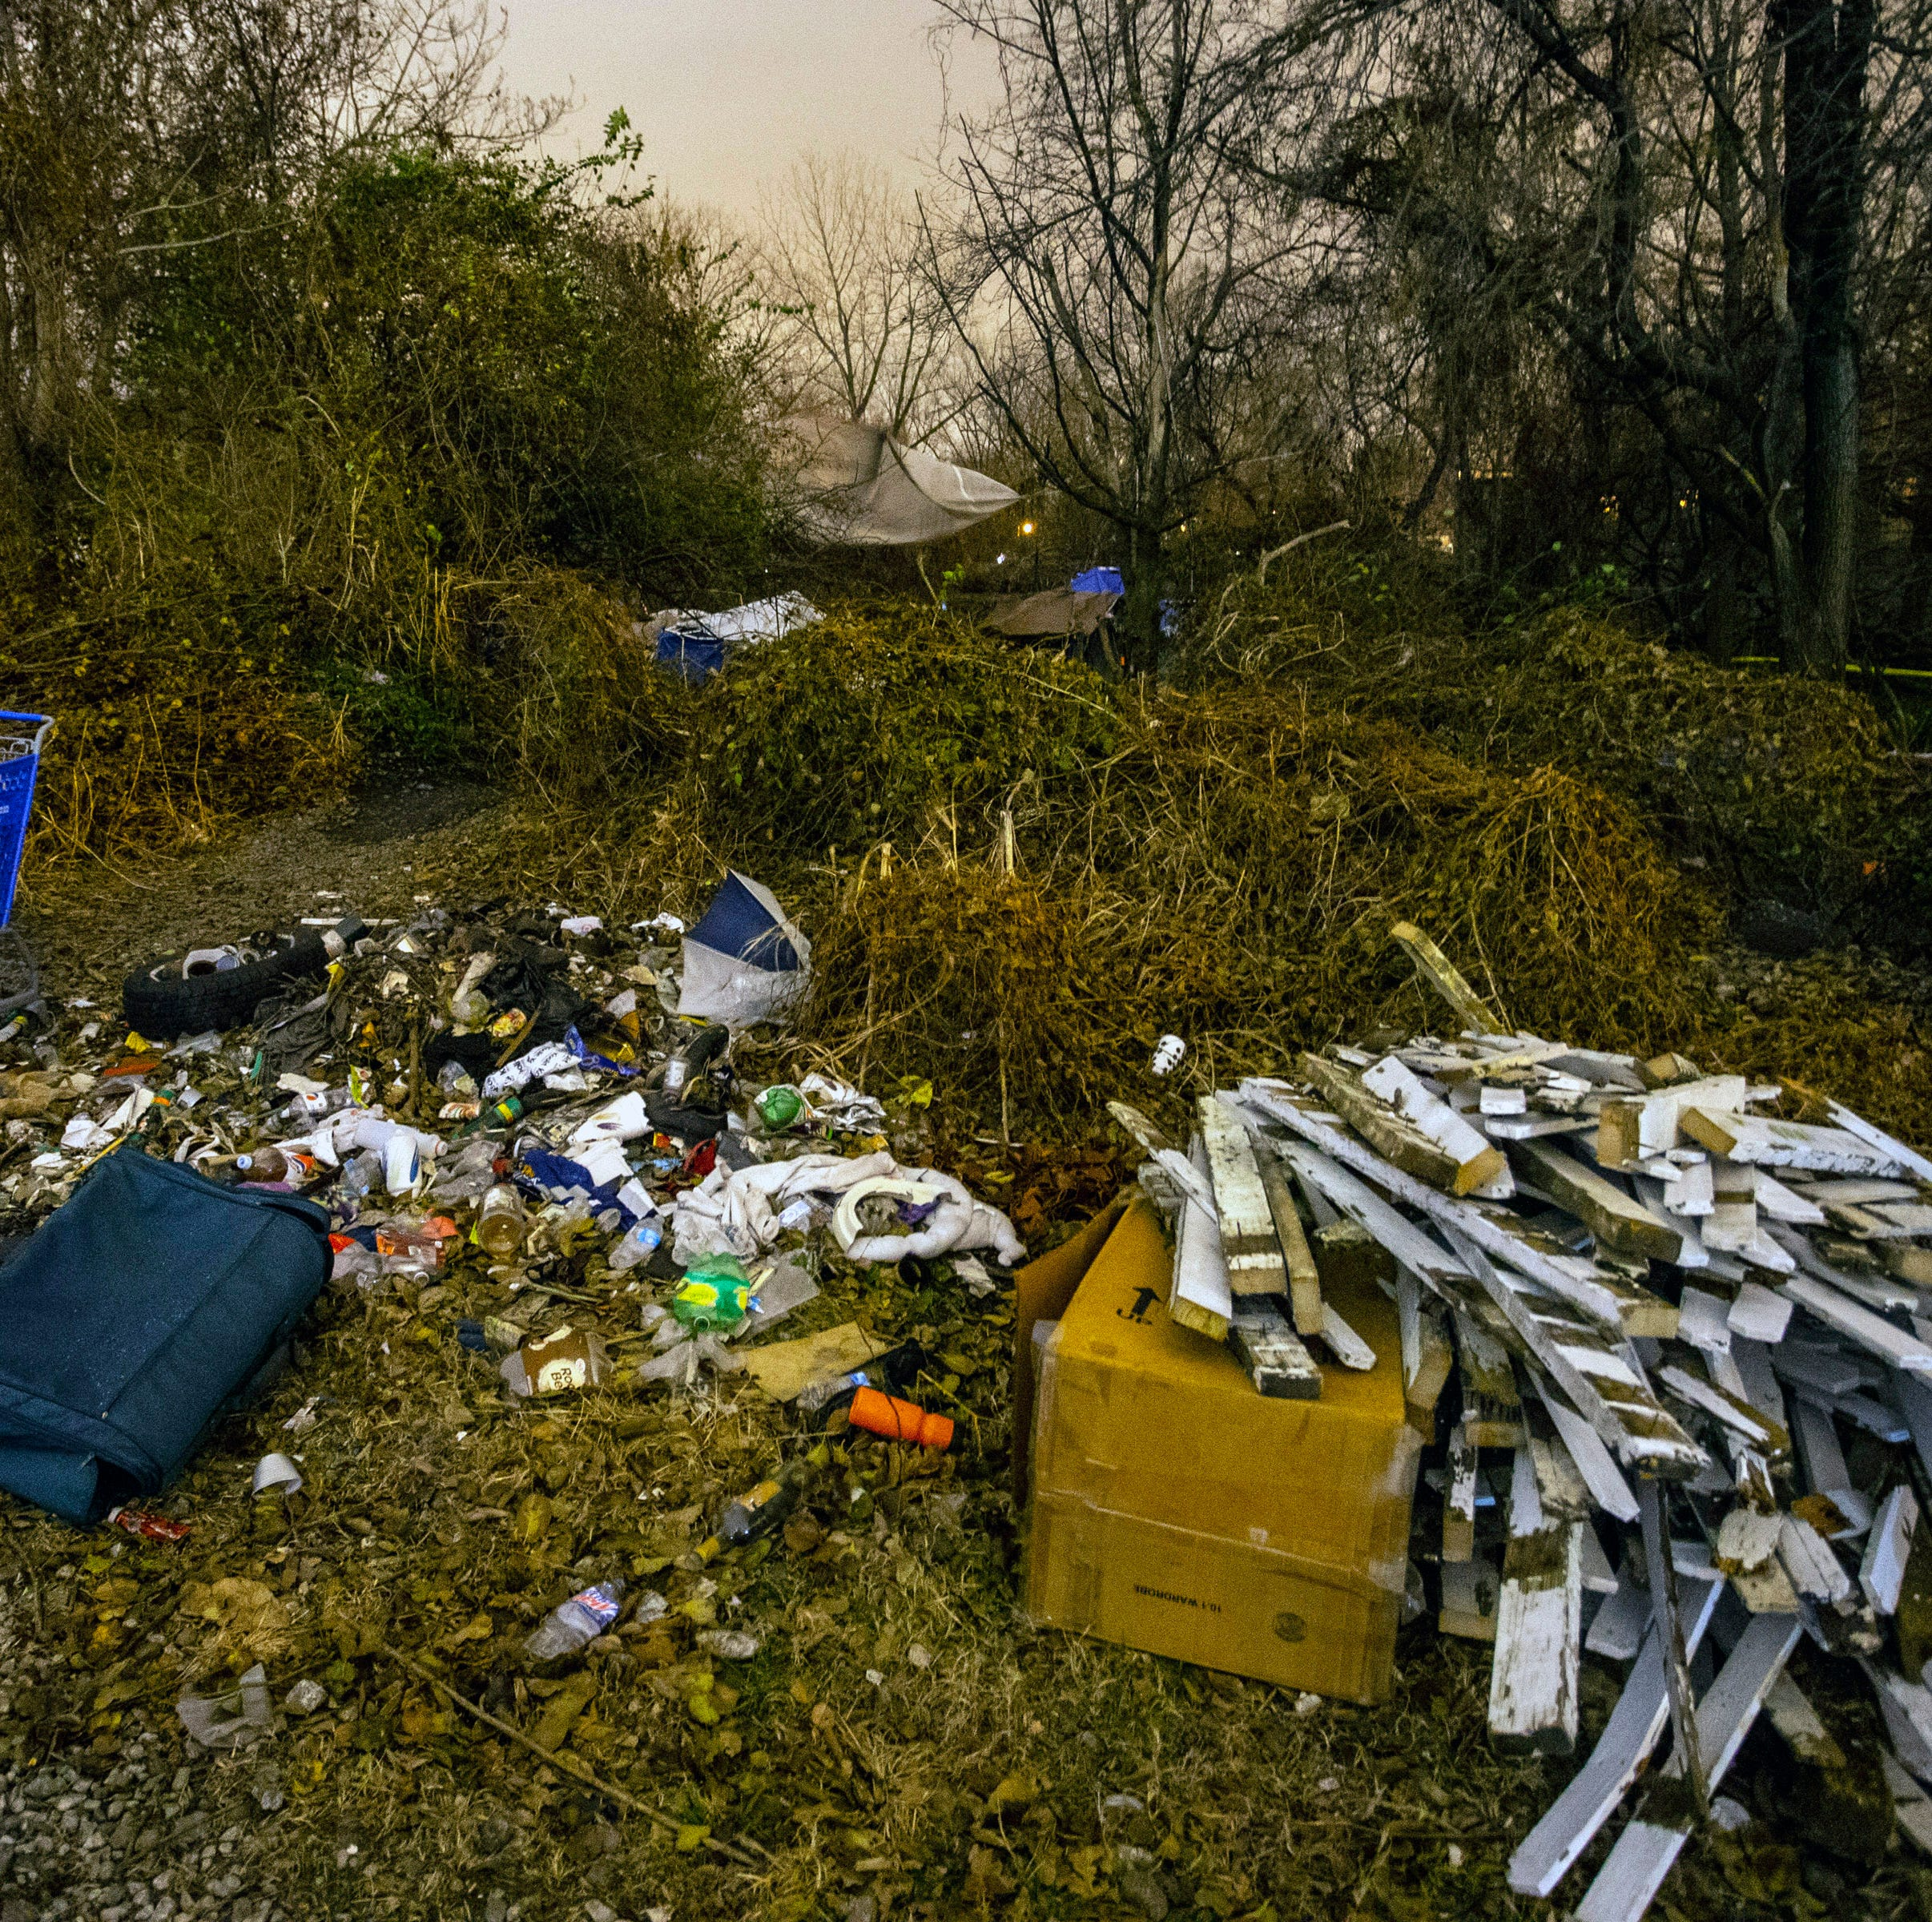 People living in homeless camp near CSX rail line will be forced to leave